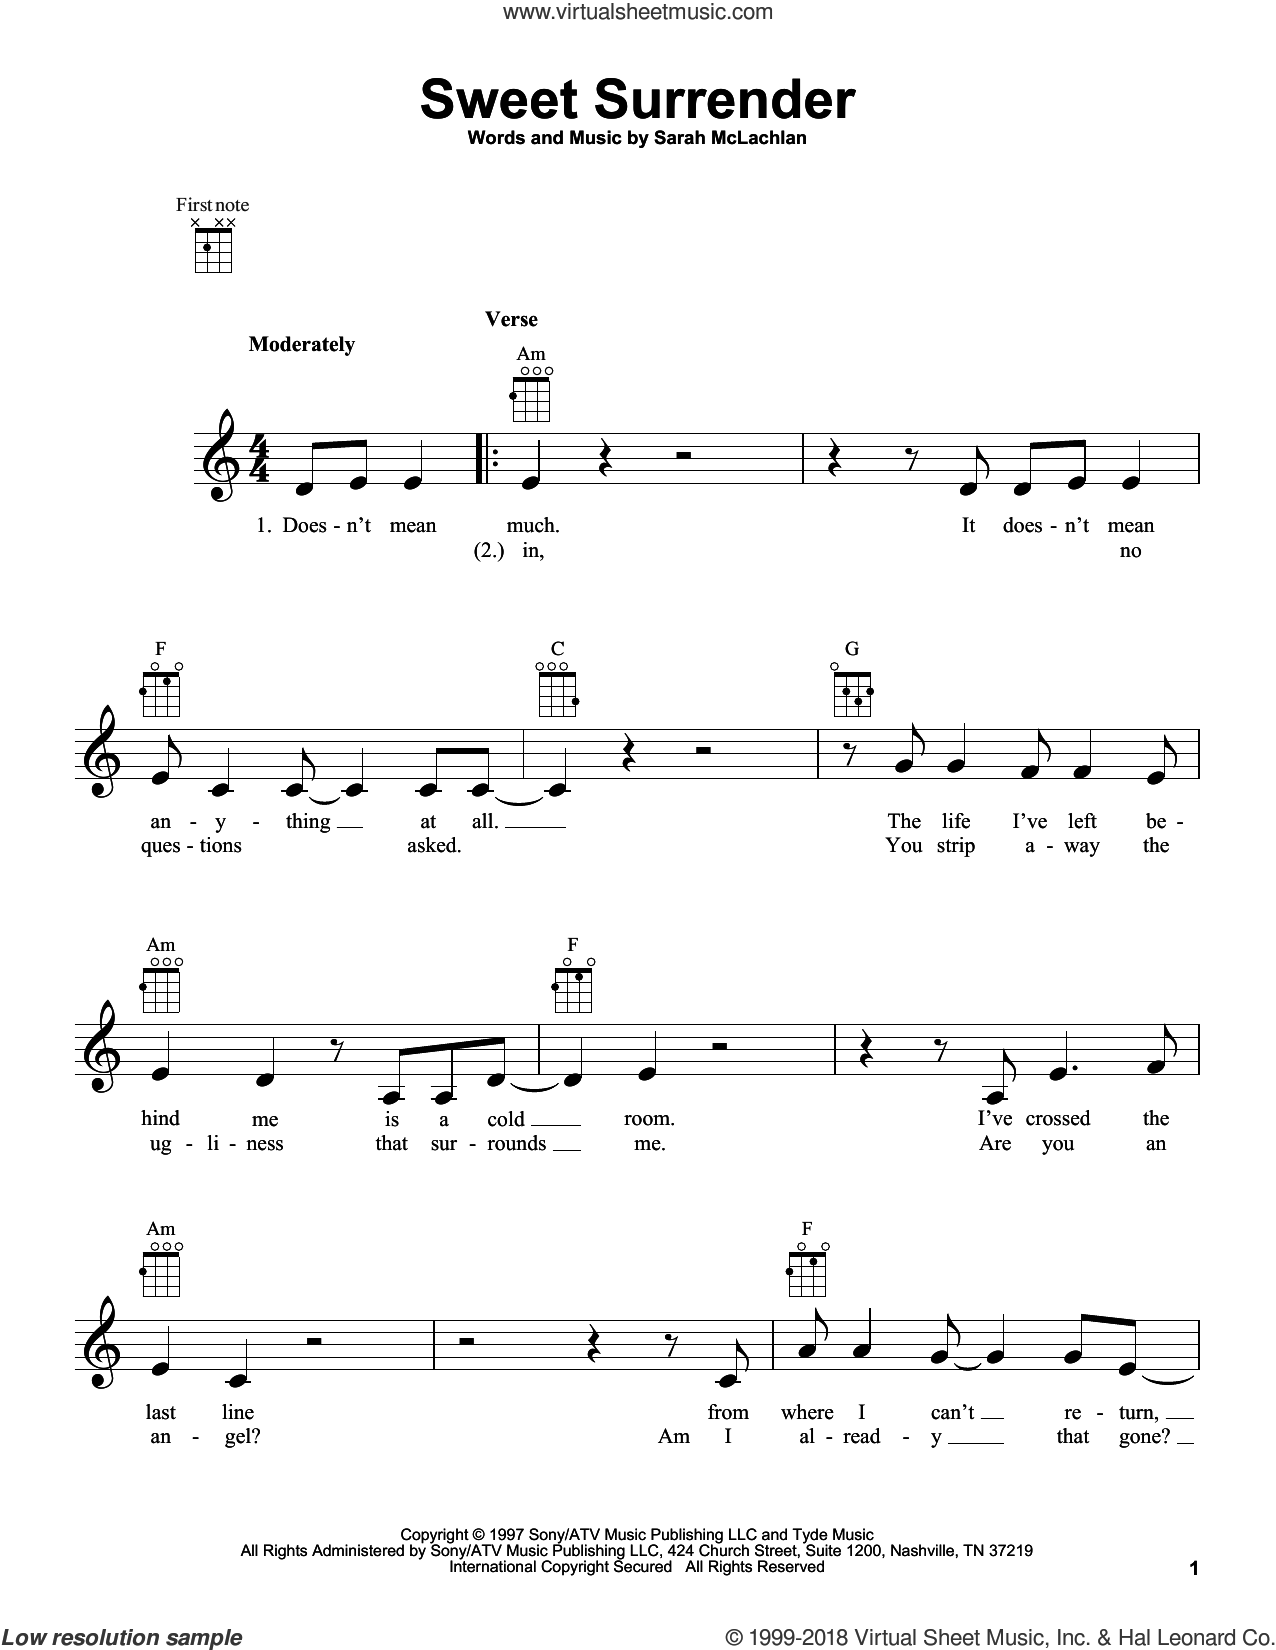 Sweet Surrender sheet music for ukulele by Sarah McLachlan, intermediate skill level